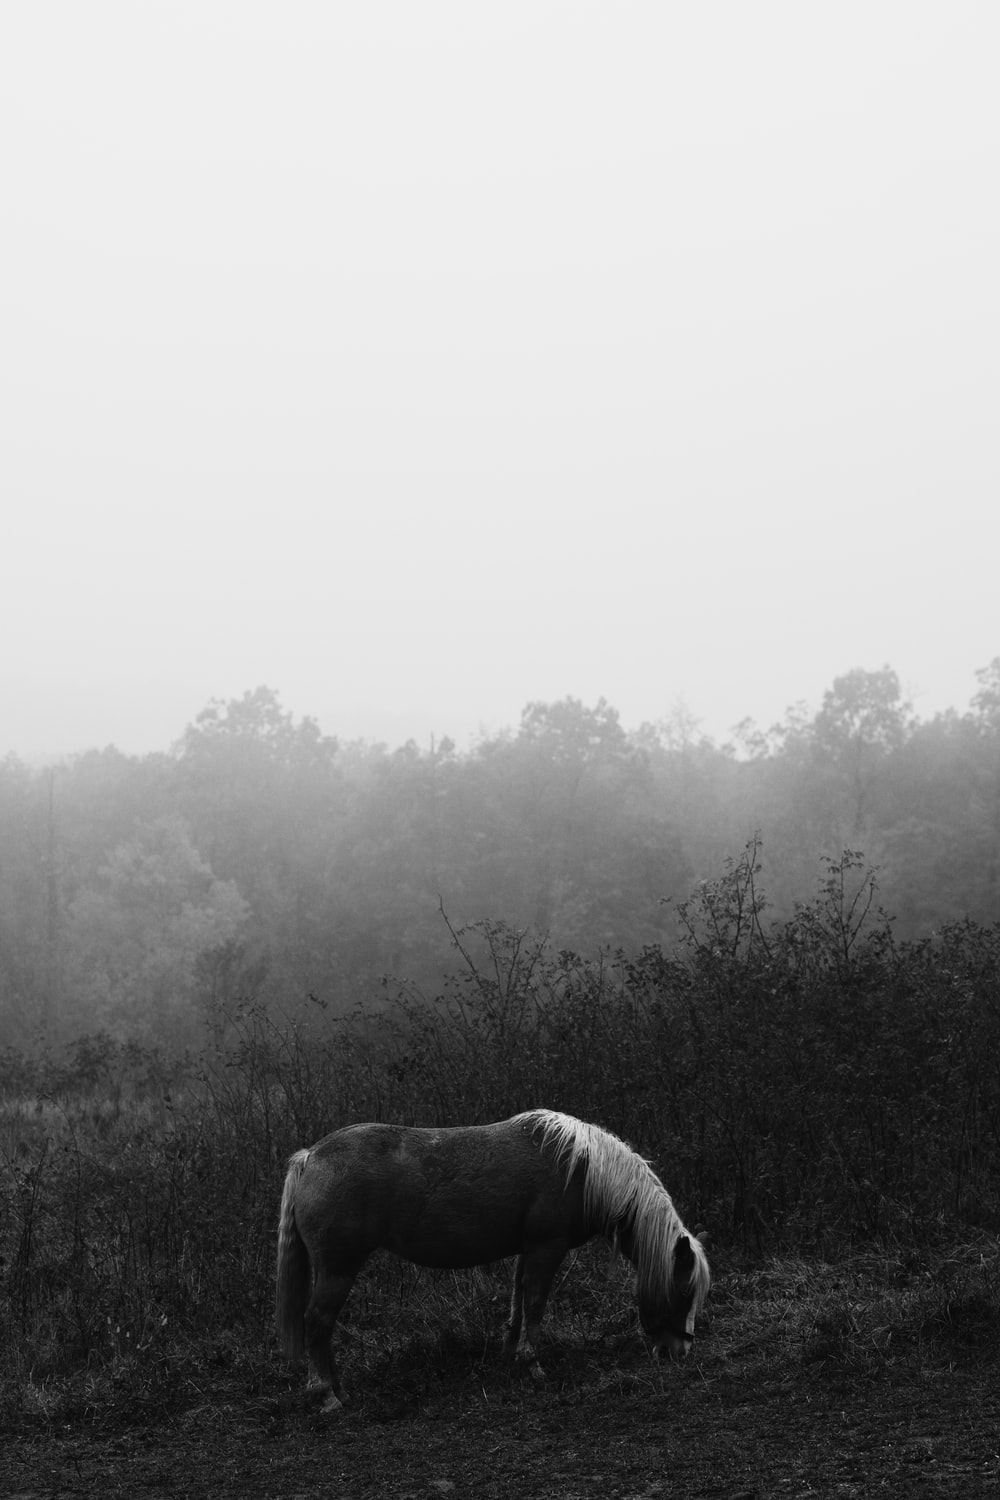 grayscale photography of horse near trees